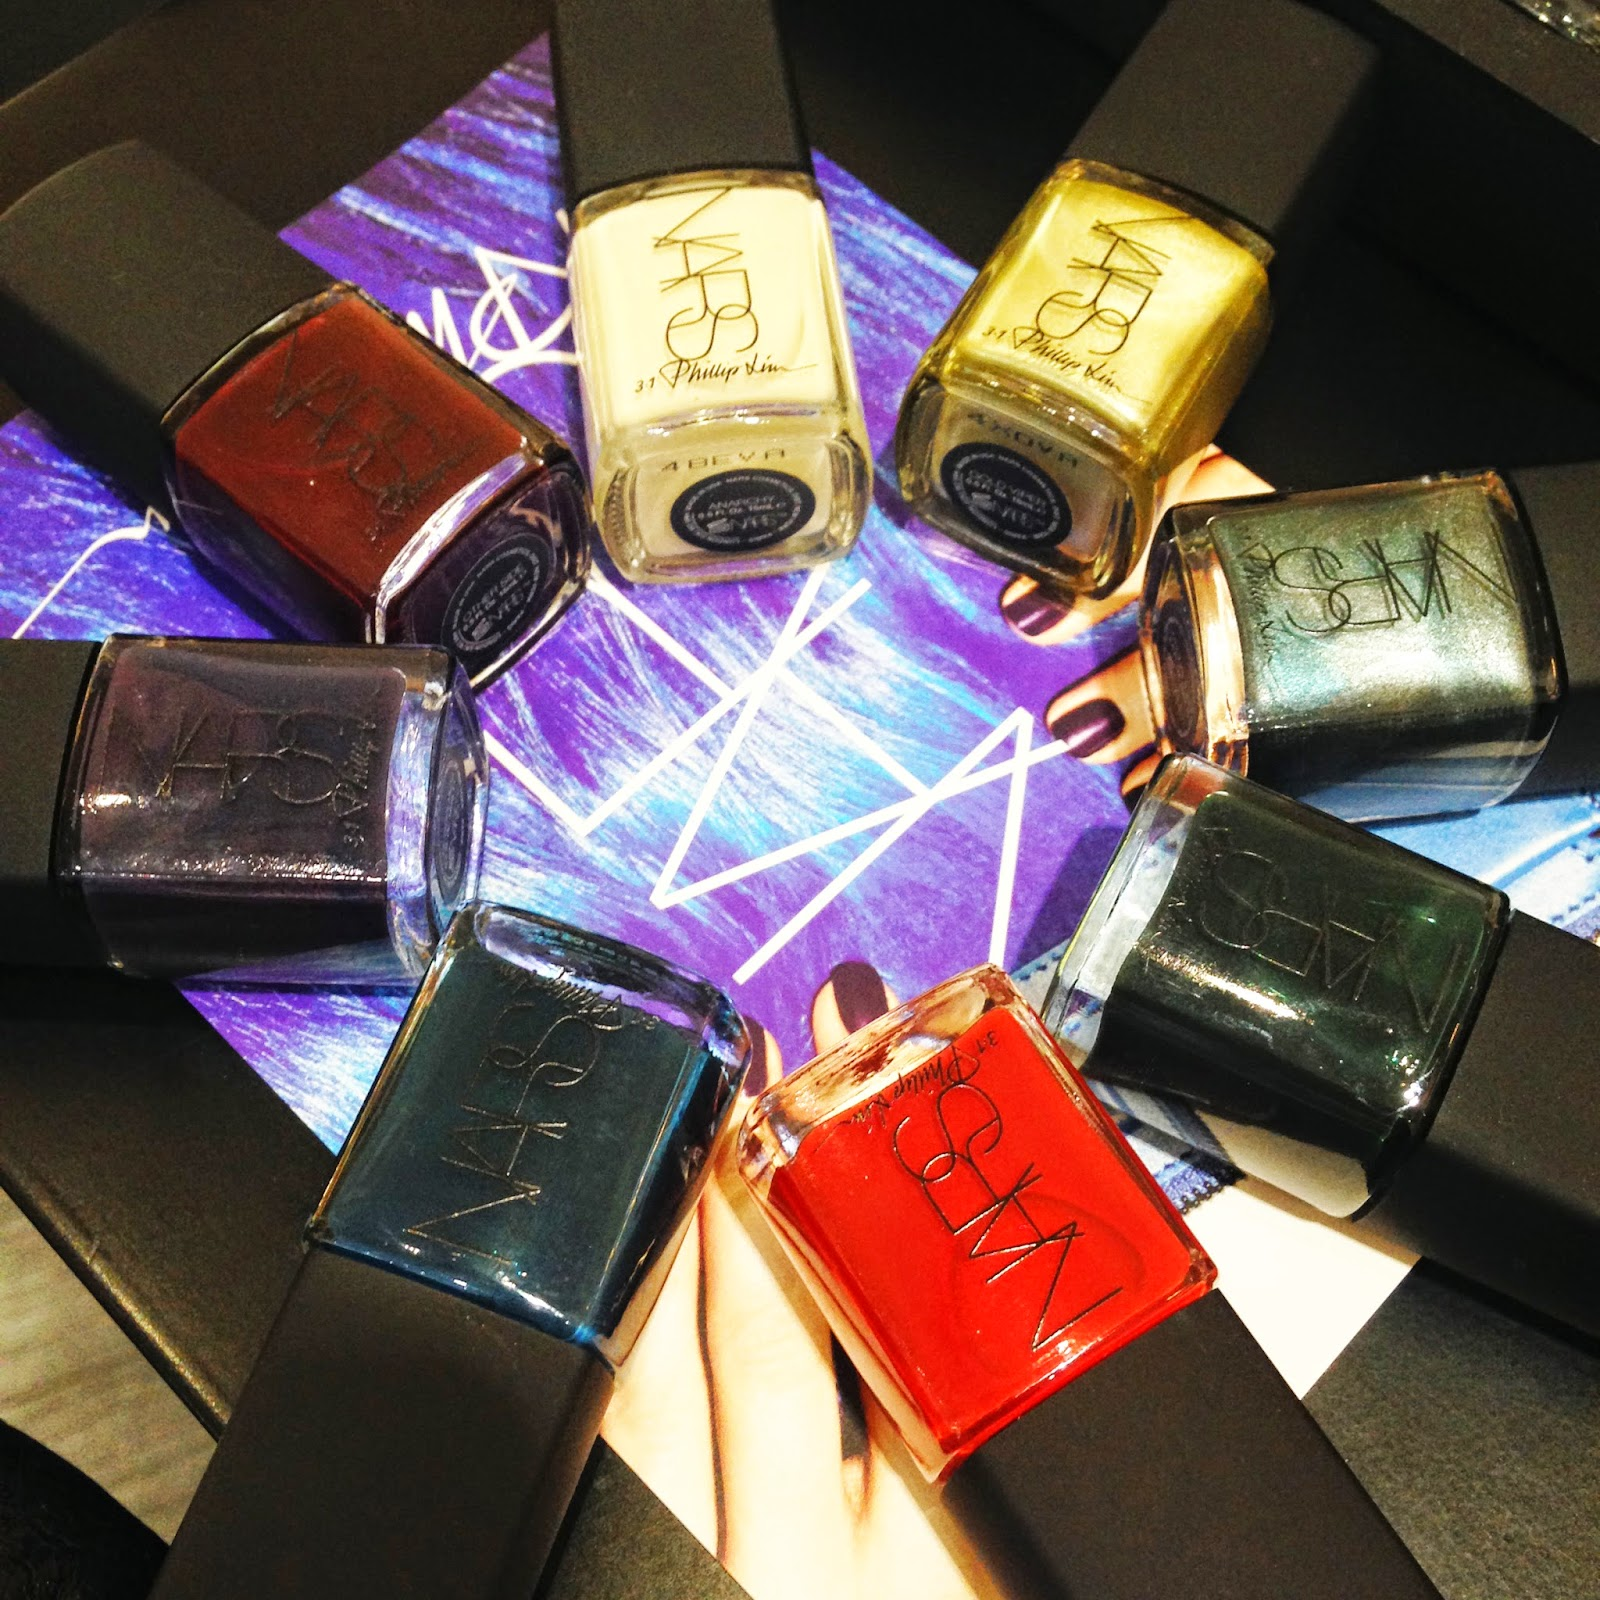 NARS by Philip Lim 3.1 Nail polishes